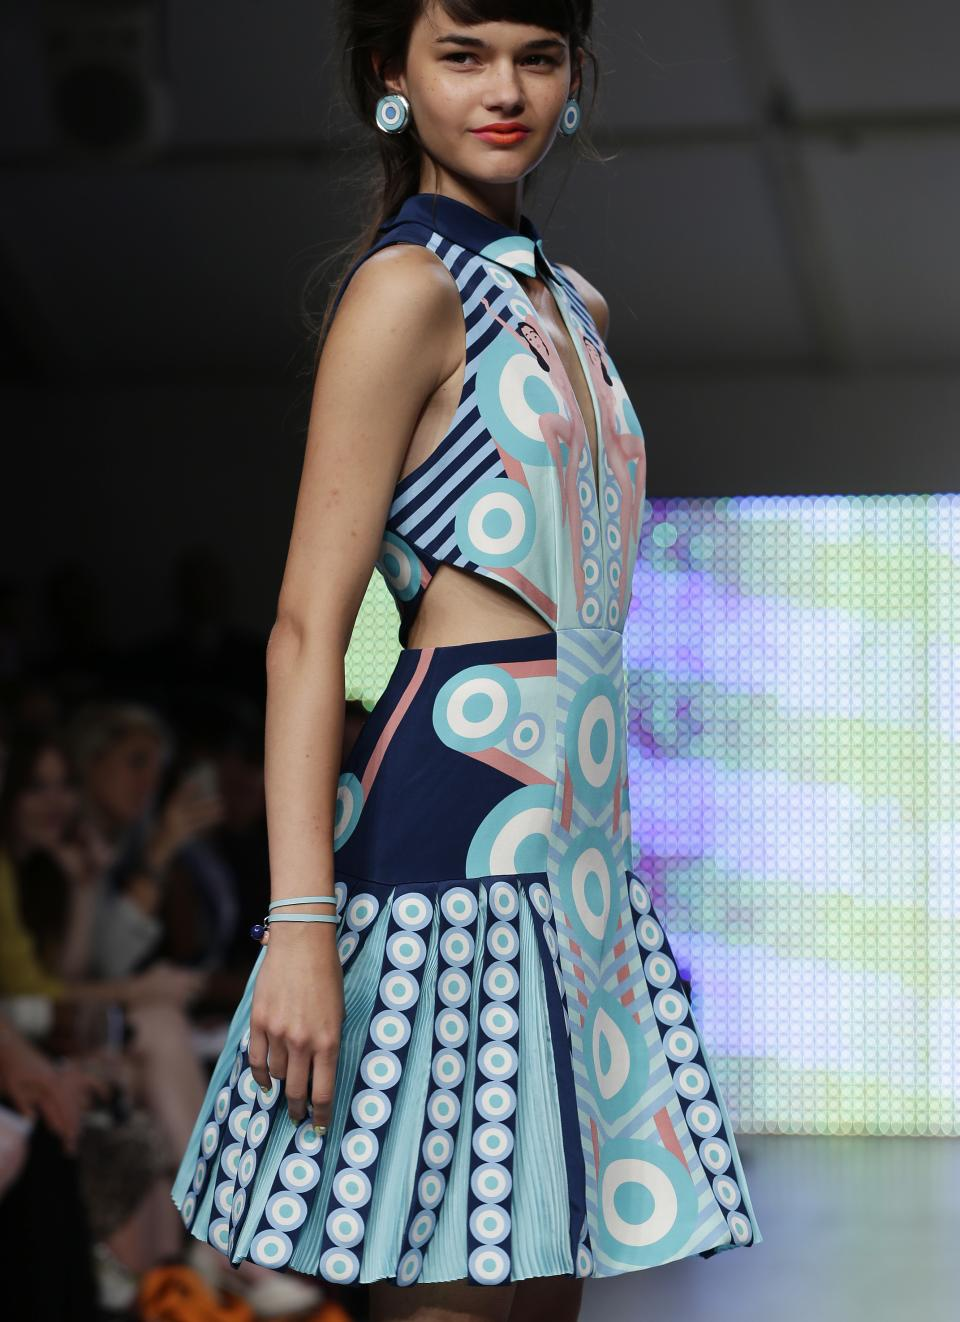 A model presents a creation by Holly Fulton during her Spring/Summer 2013 show at London Fashion Week in London, Saturday, Sept. 15, 2012. (AP Photo/Alastair Grant)